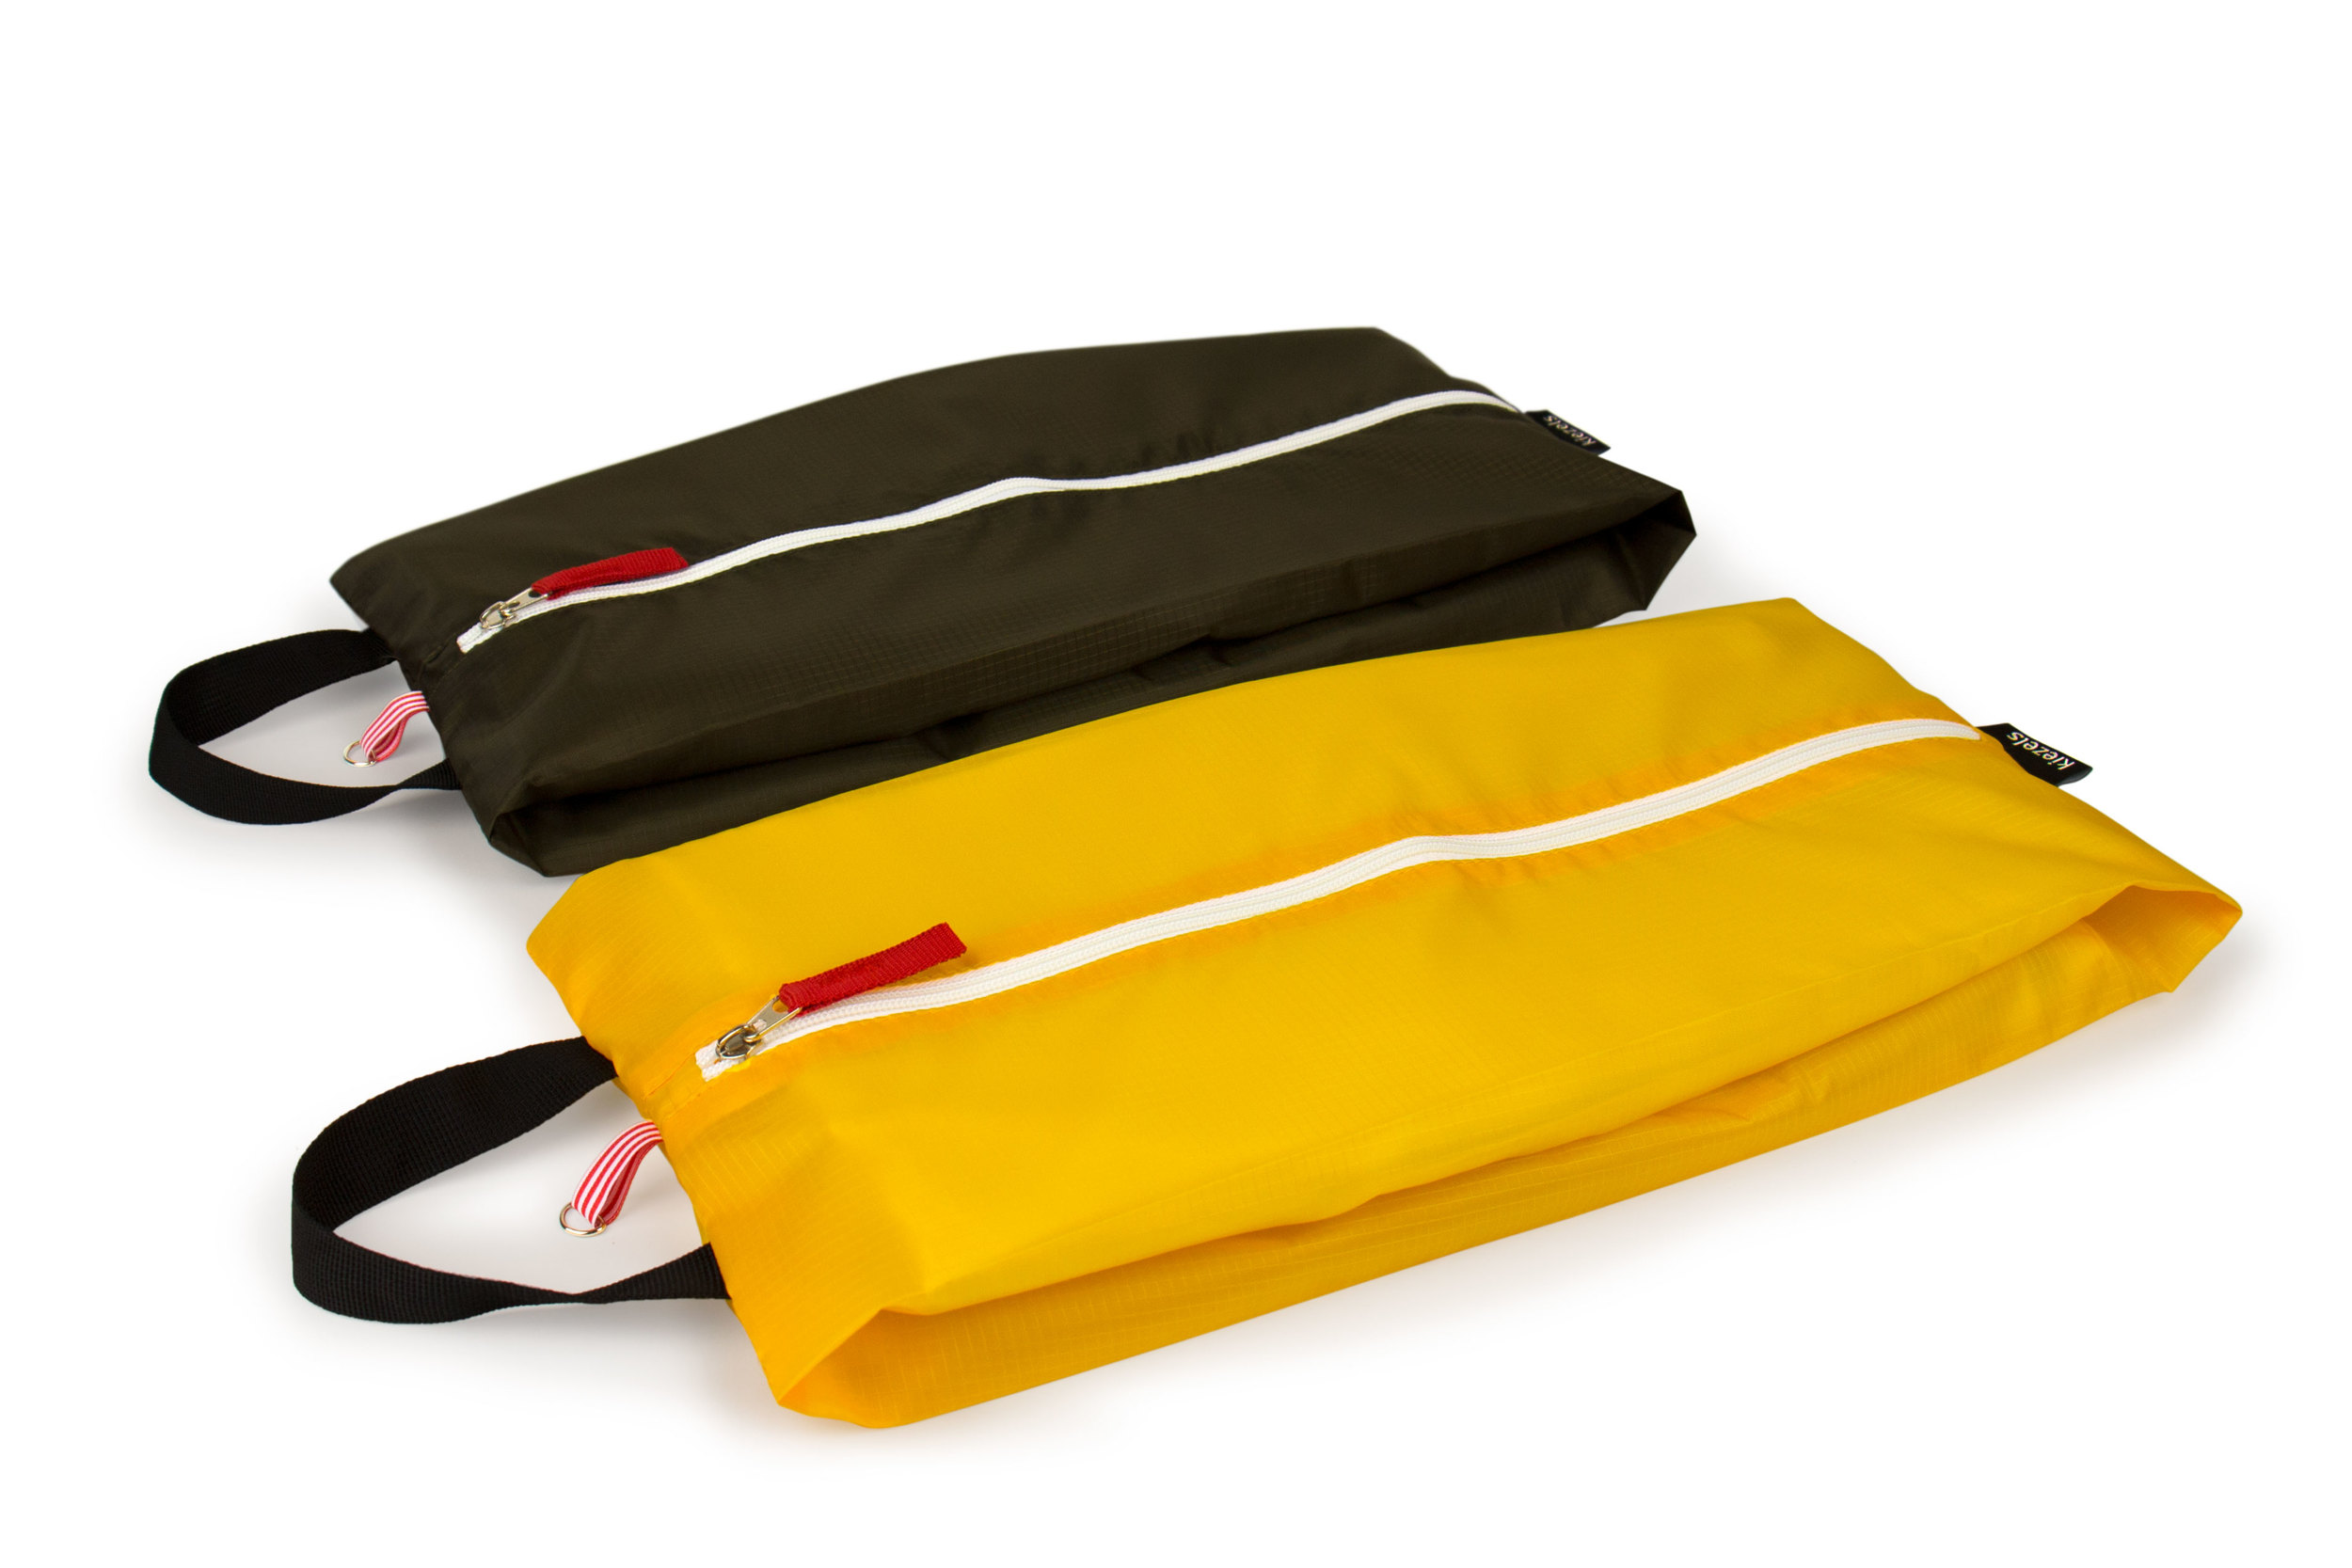 No. 310 Travel organiser bags / shoe bags - size L - armee green & yellow € 21,-